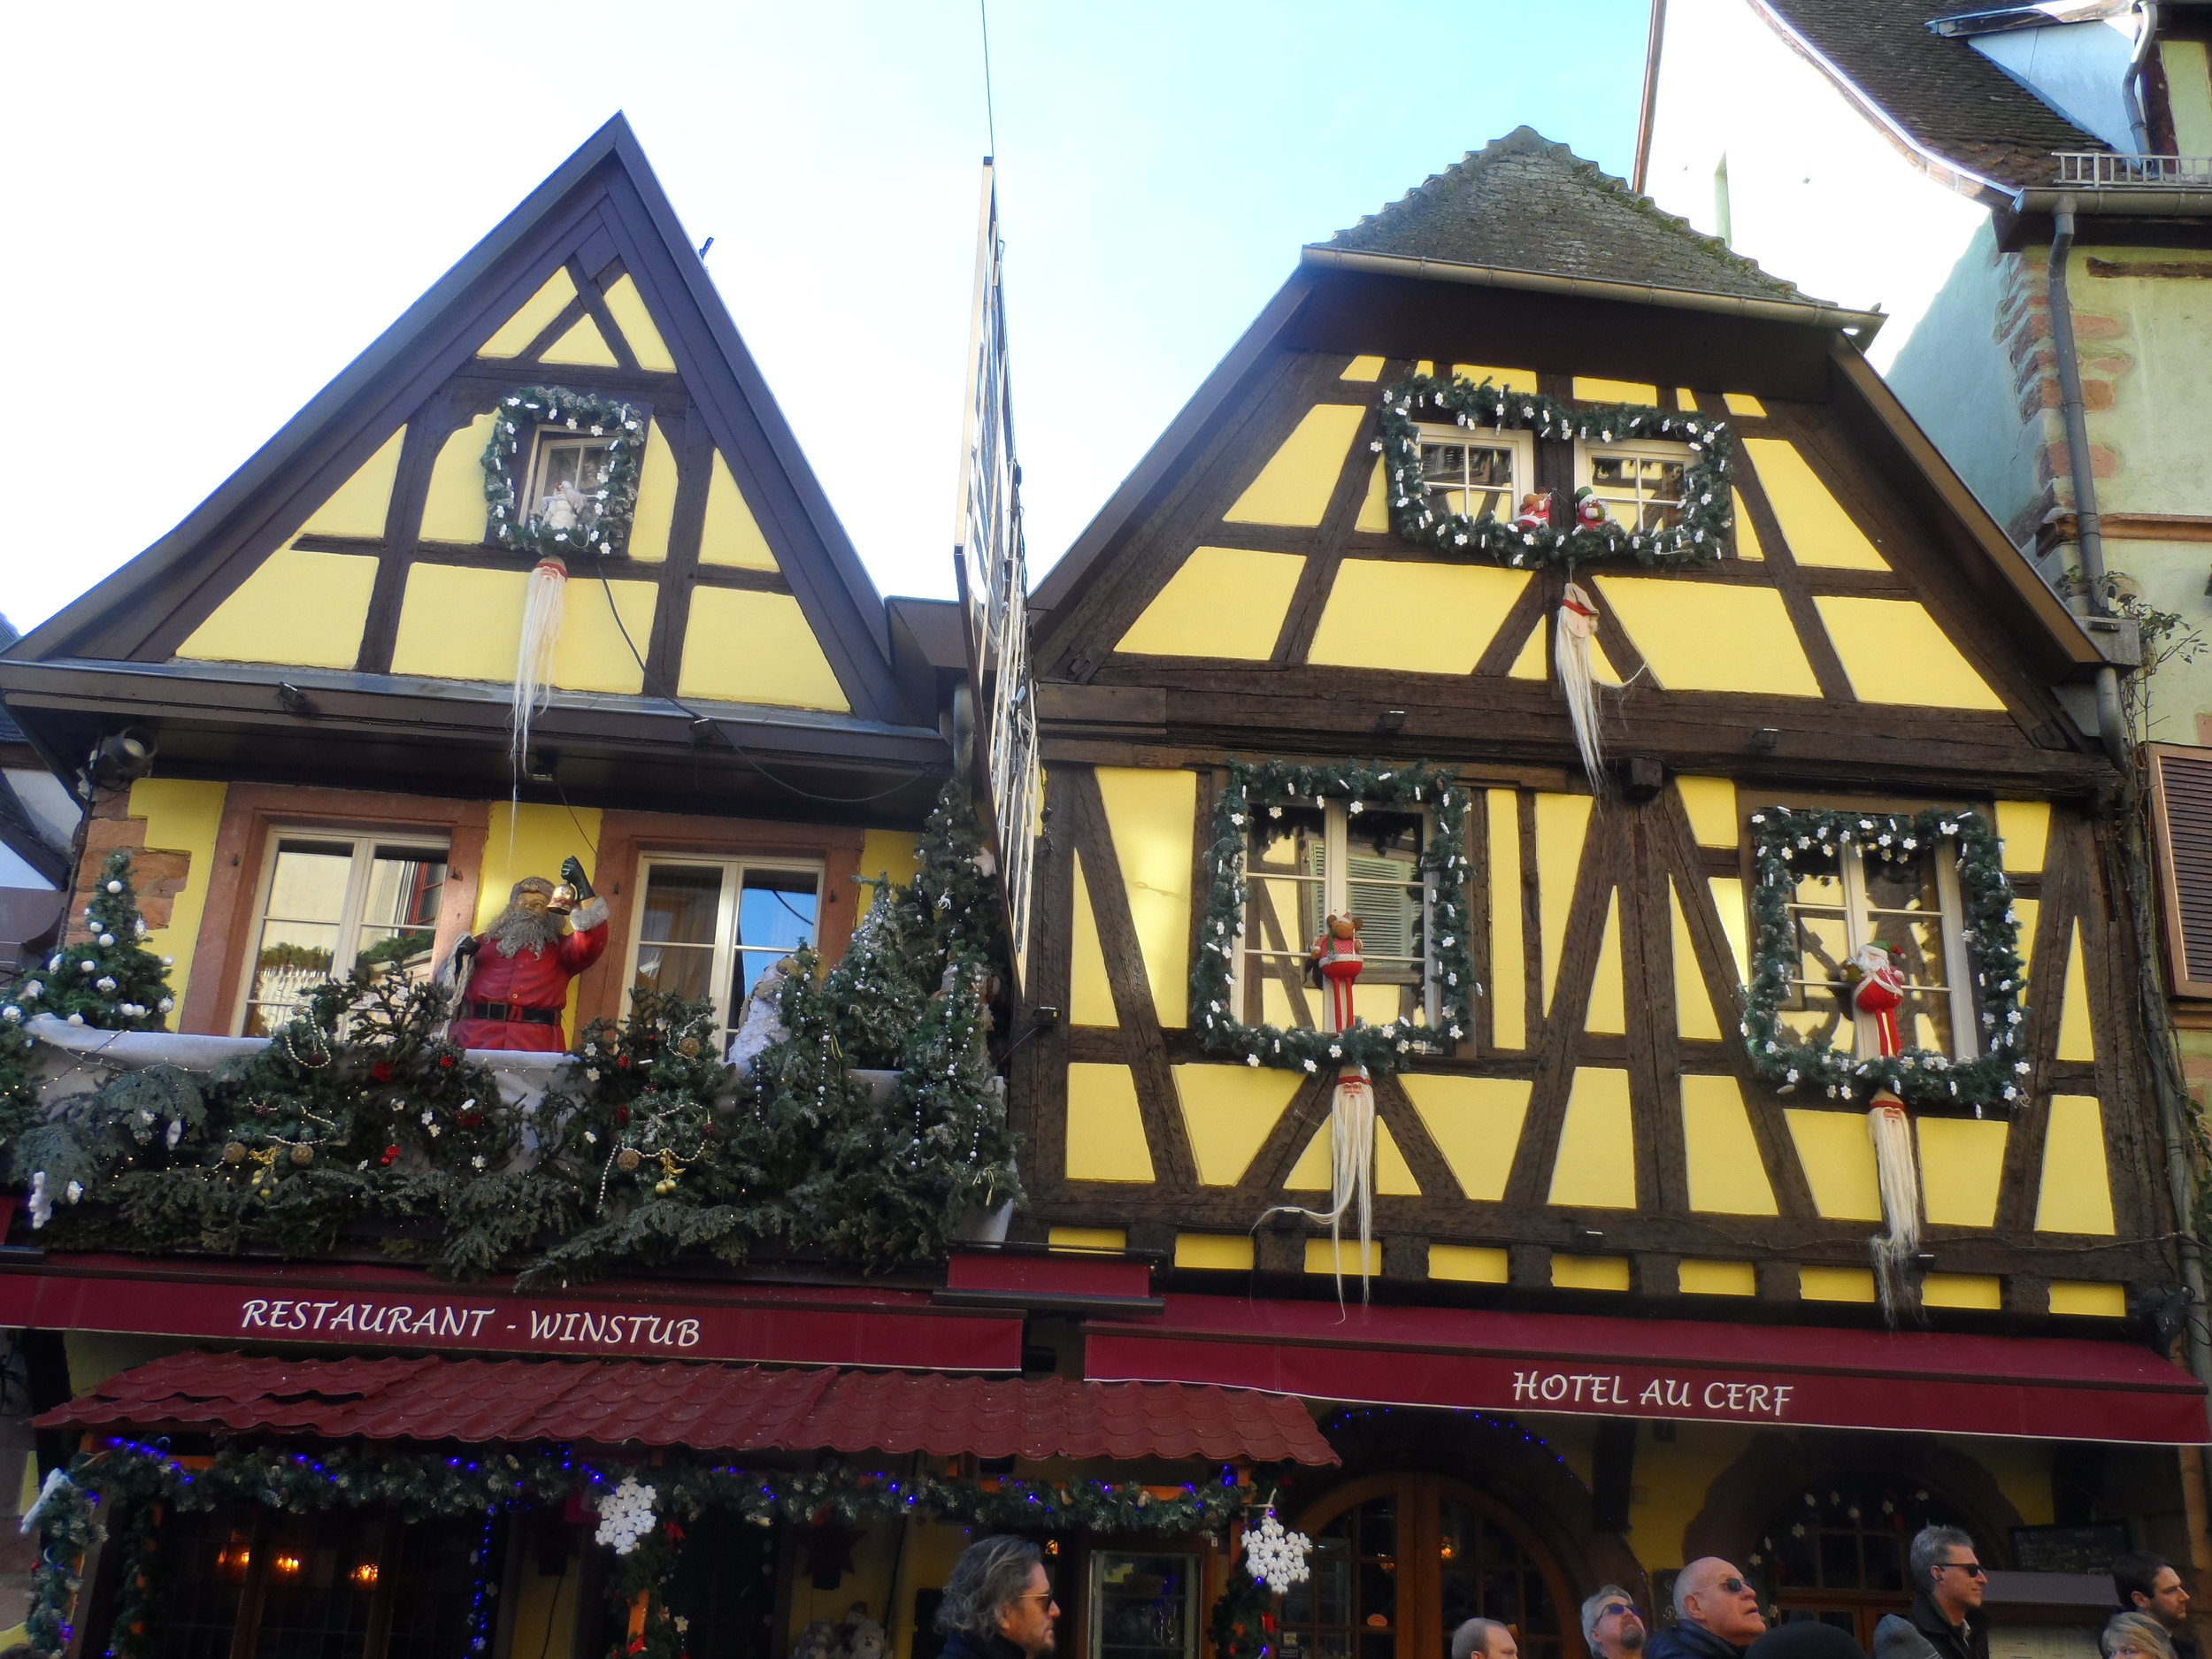 Christmas decorations in Riquewihr, France